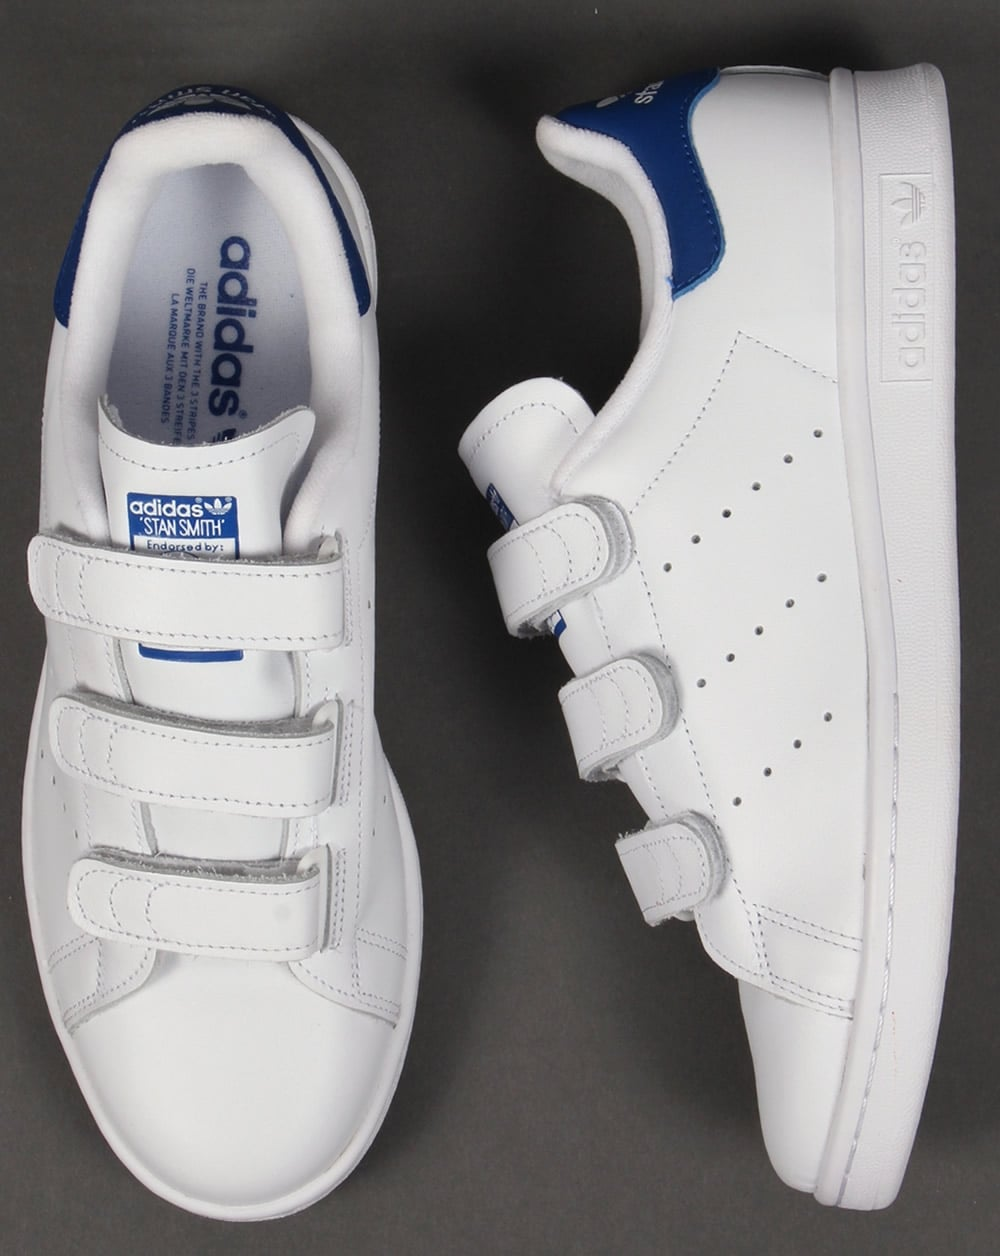 Adidas Shoes Stan Smith Price Philippines